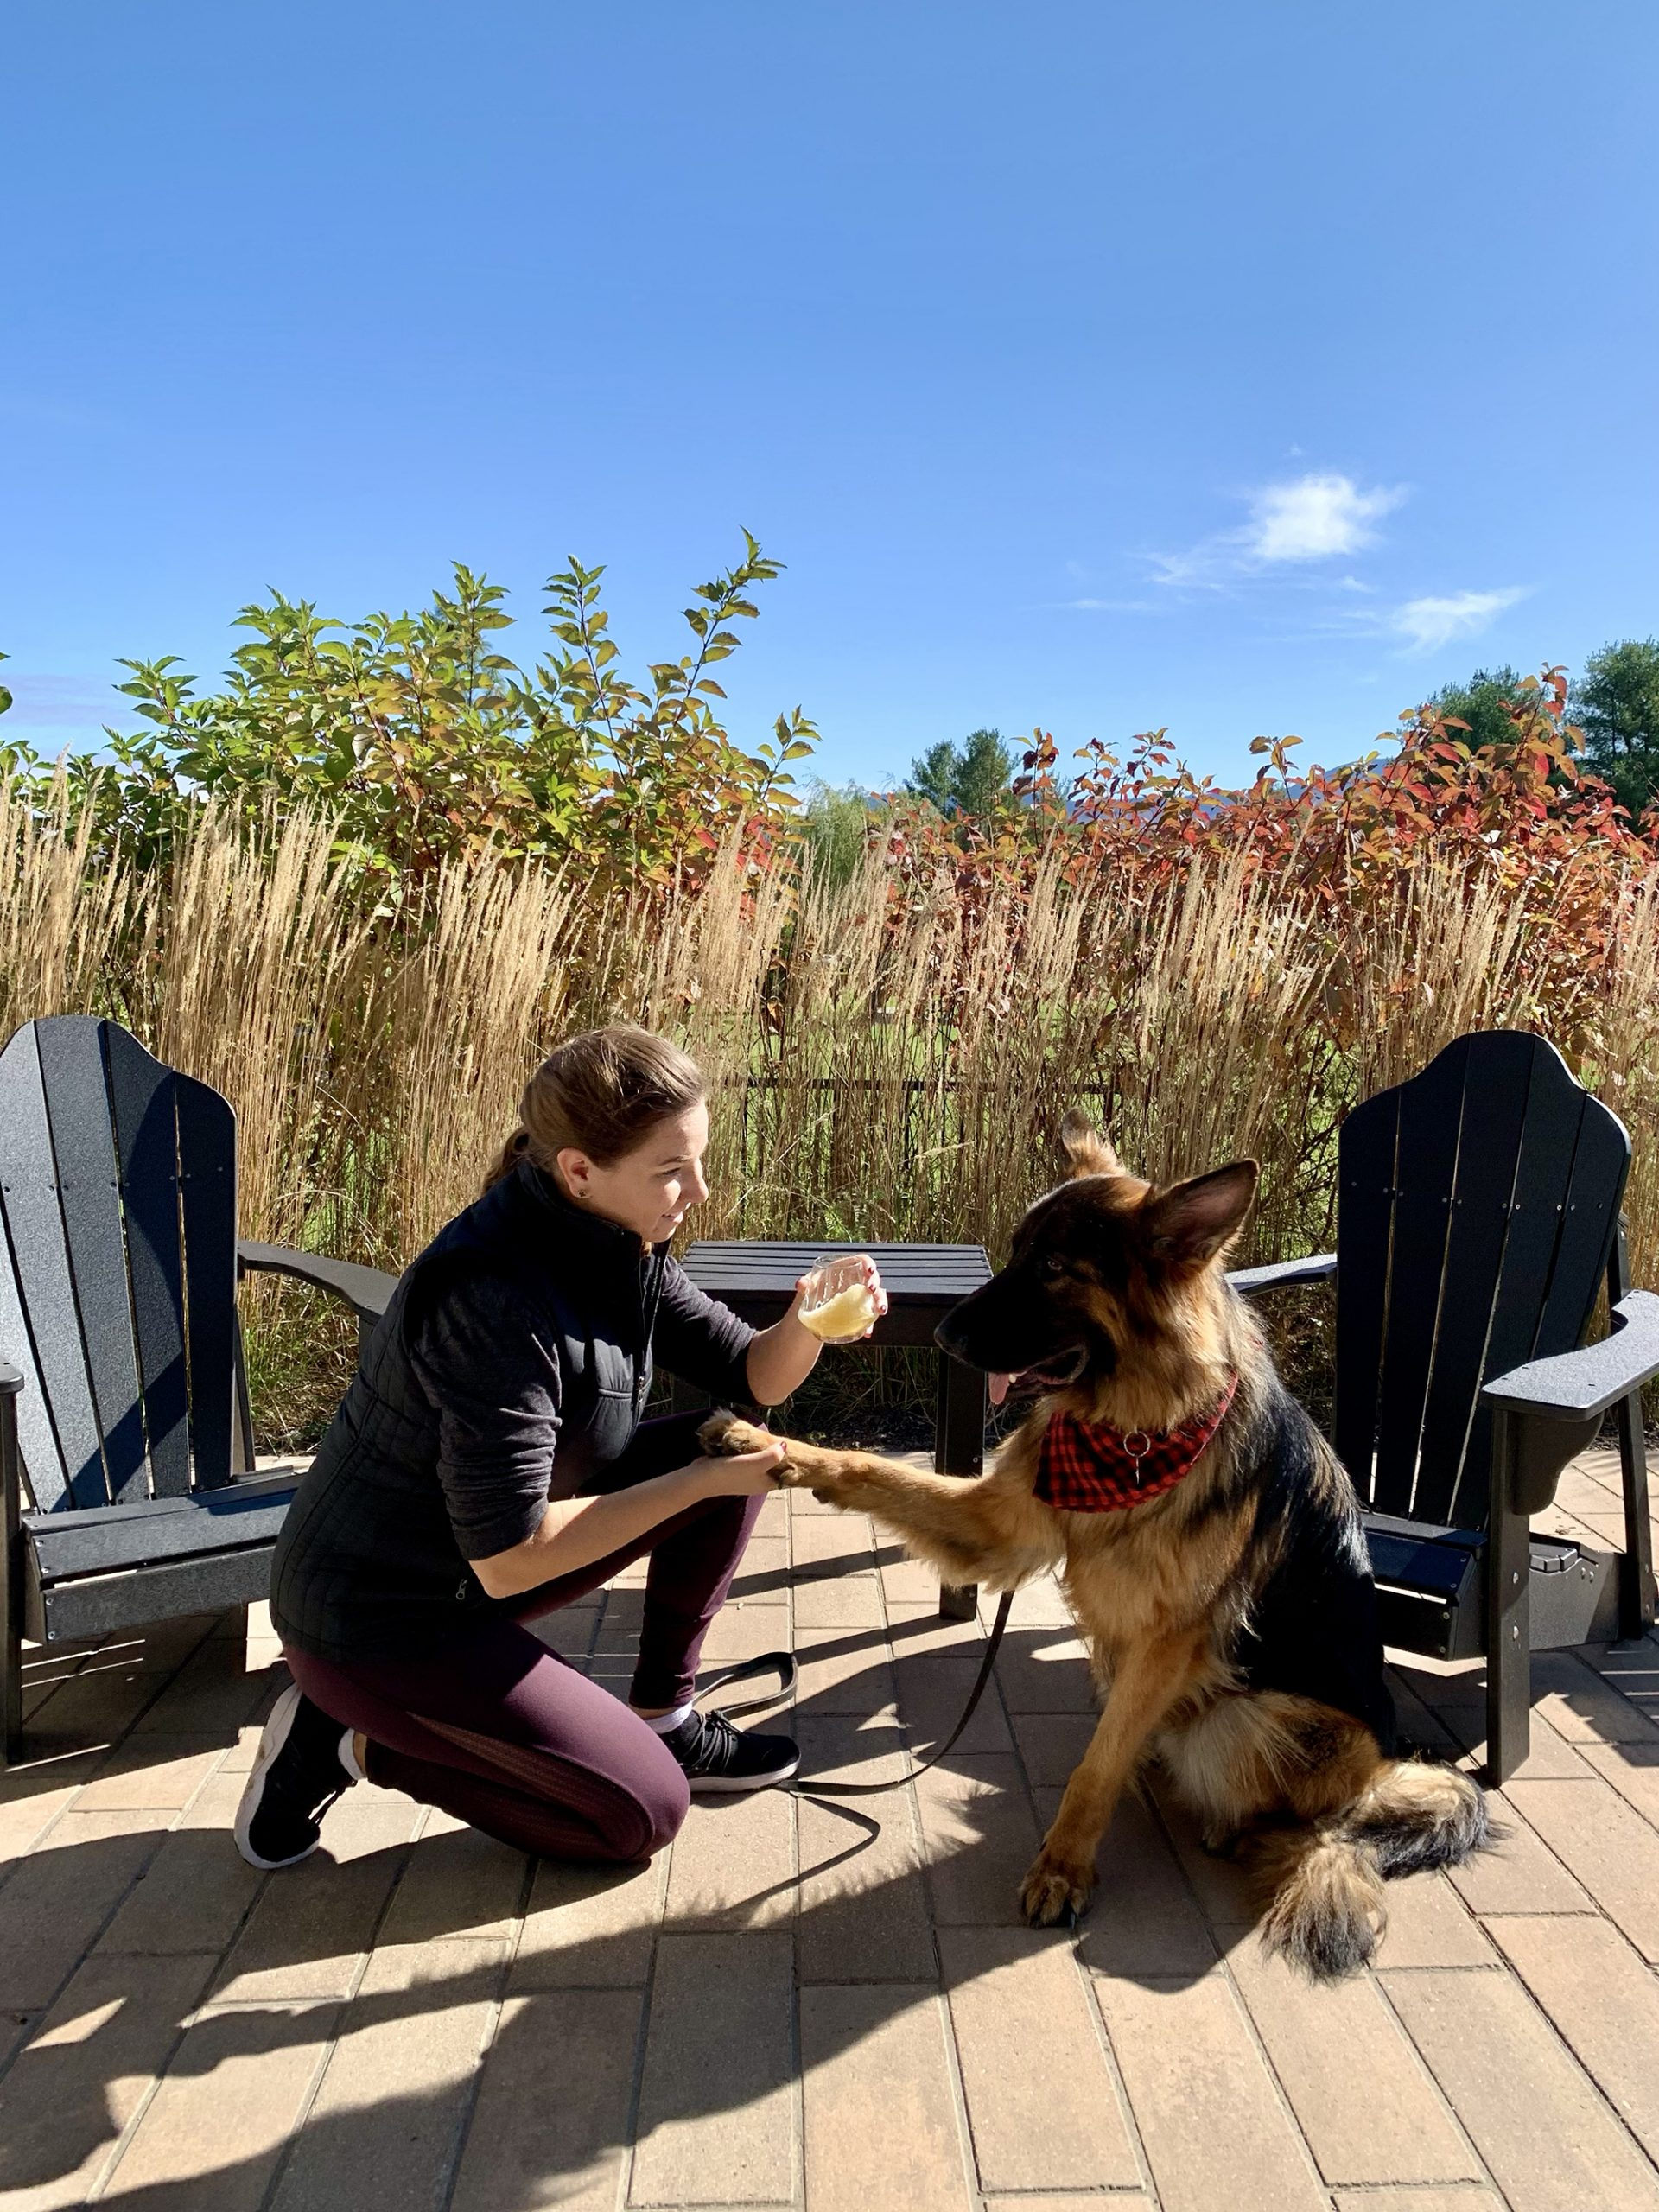 a girl with a beer shaking hands with a dog at Alchemist Brewery in Stowe, VT